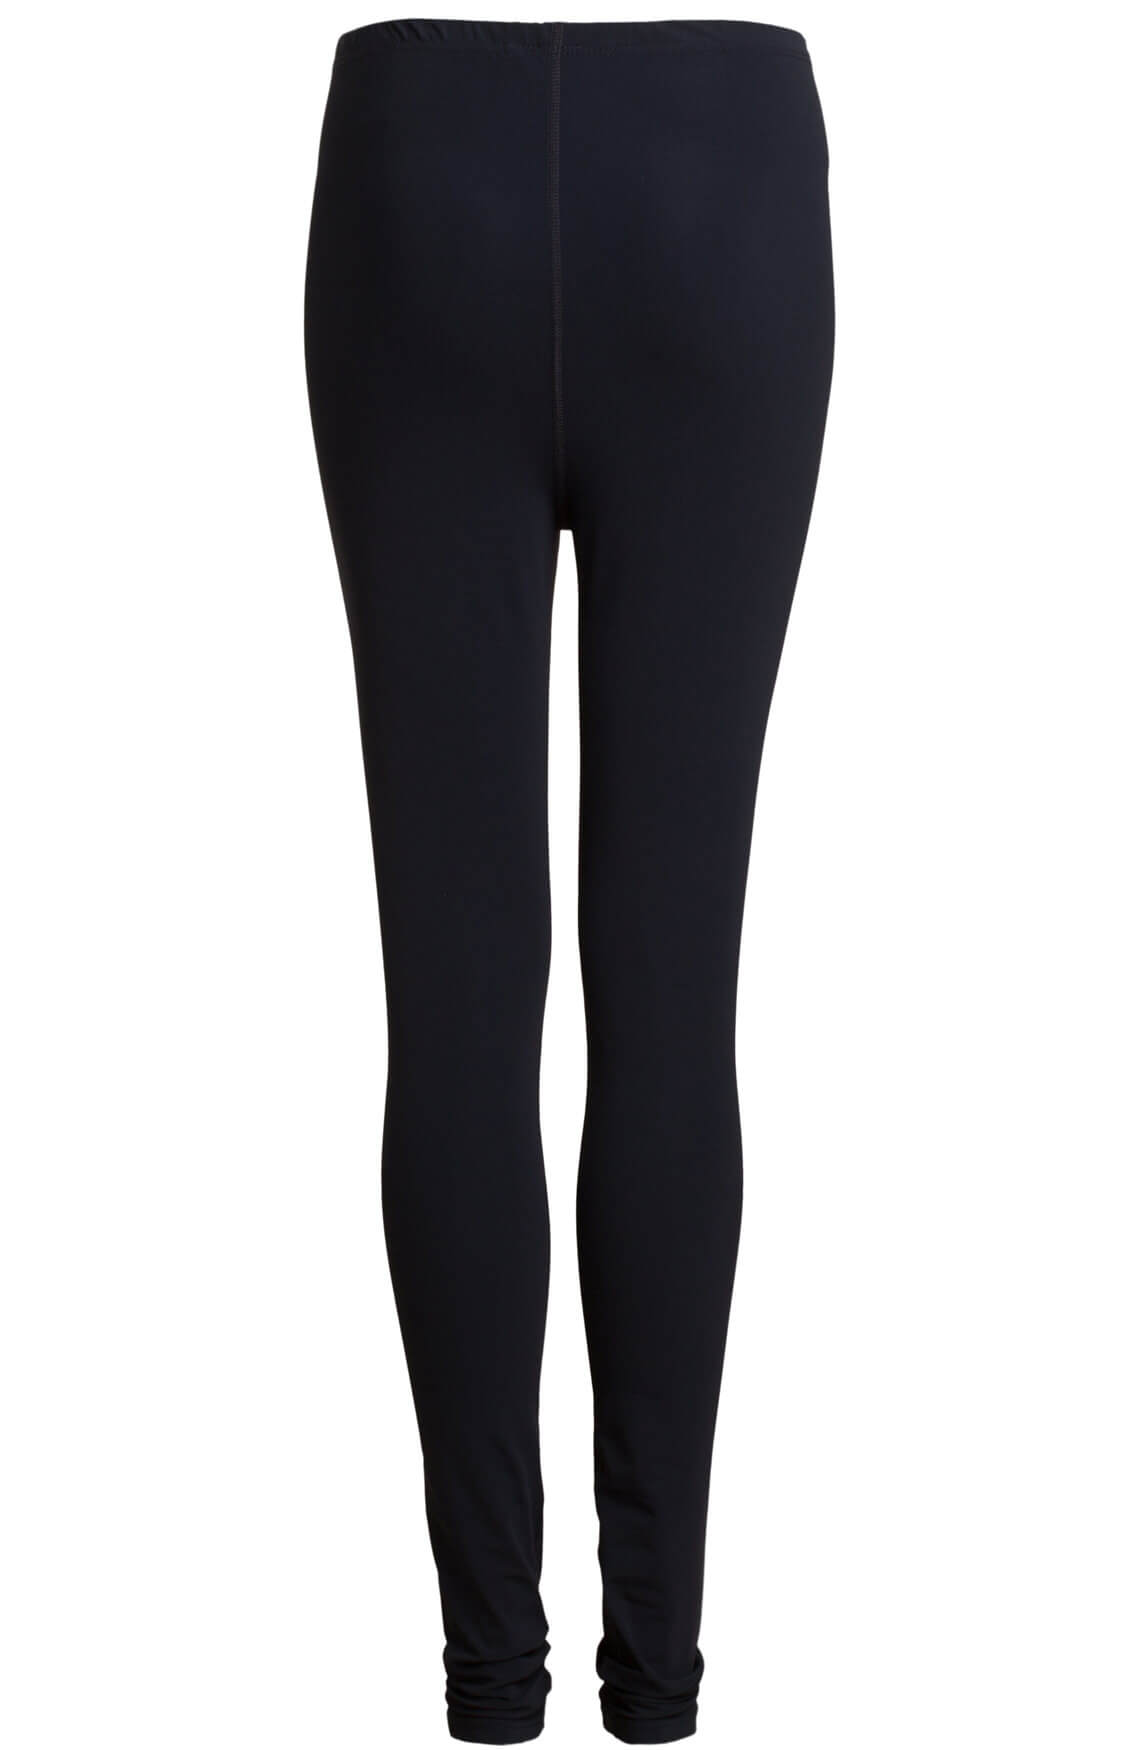 Penn & Ink Dames Legging 0